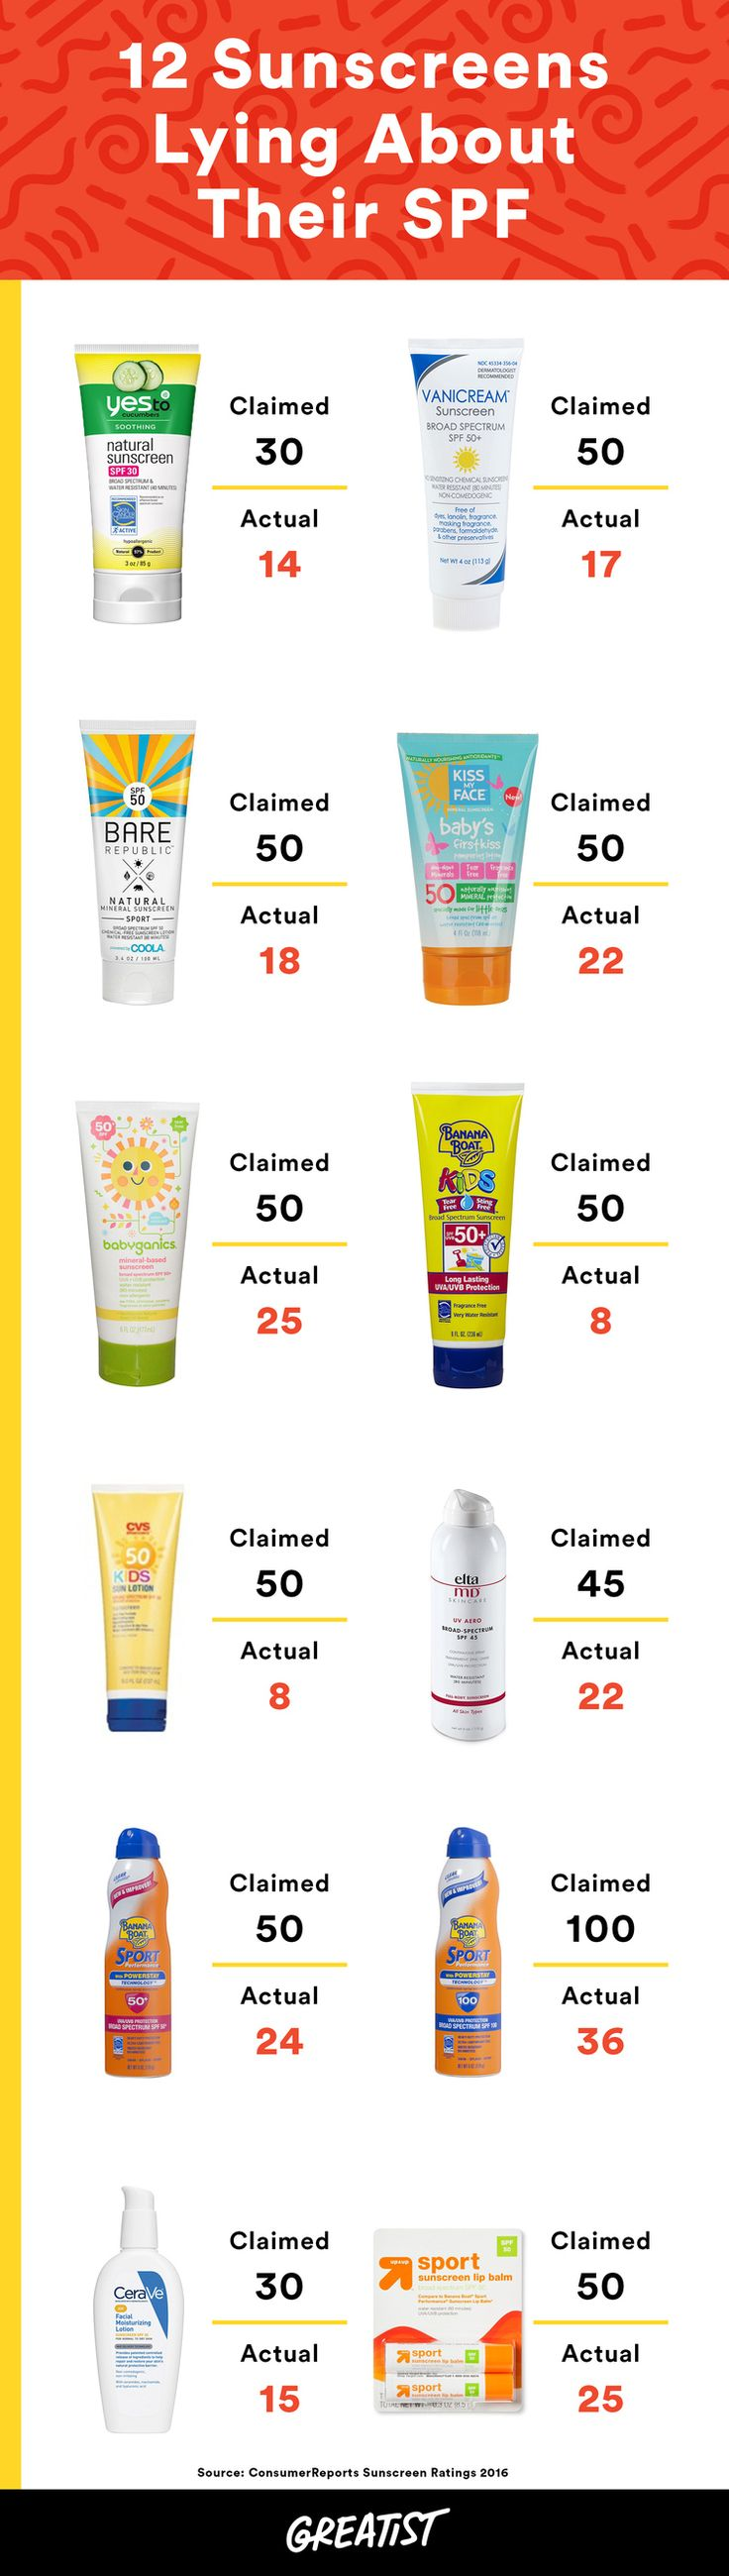 Steer clear the next time you're shopping for sunblock. #health #news http://greatist.com/live/sunscreens-that-are-lying-about-their-spf